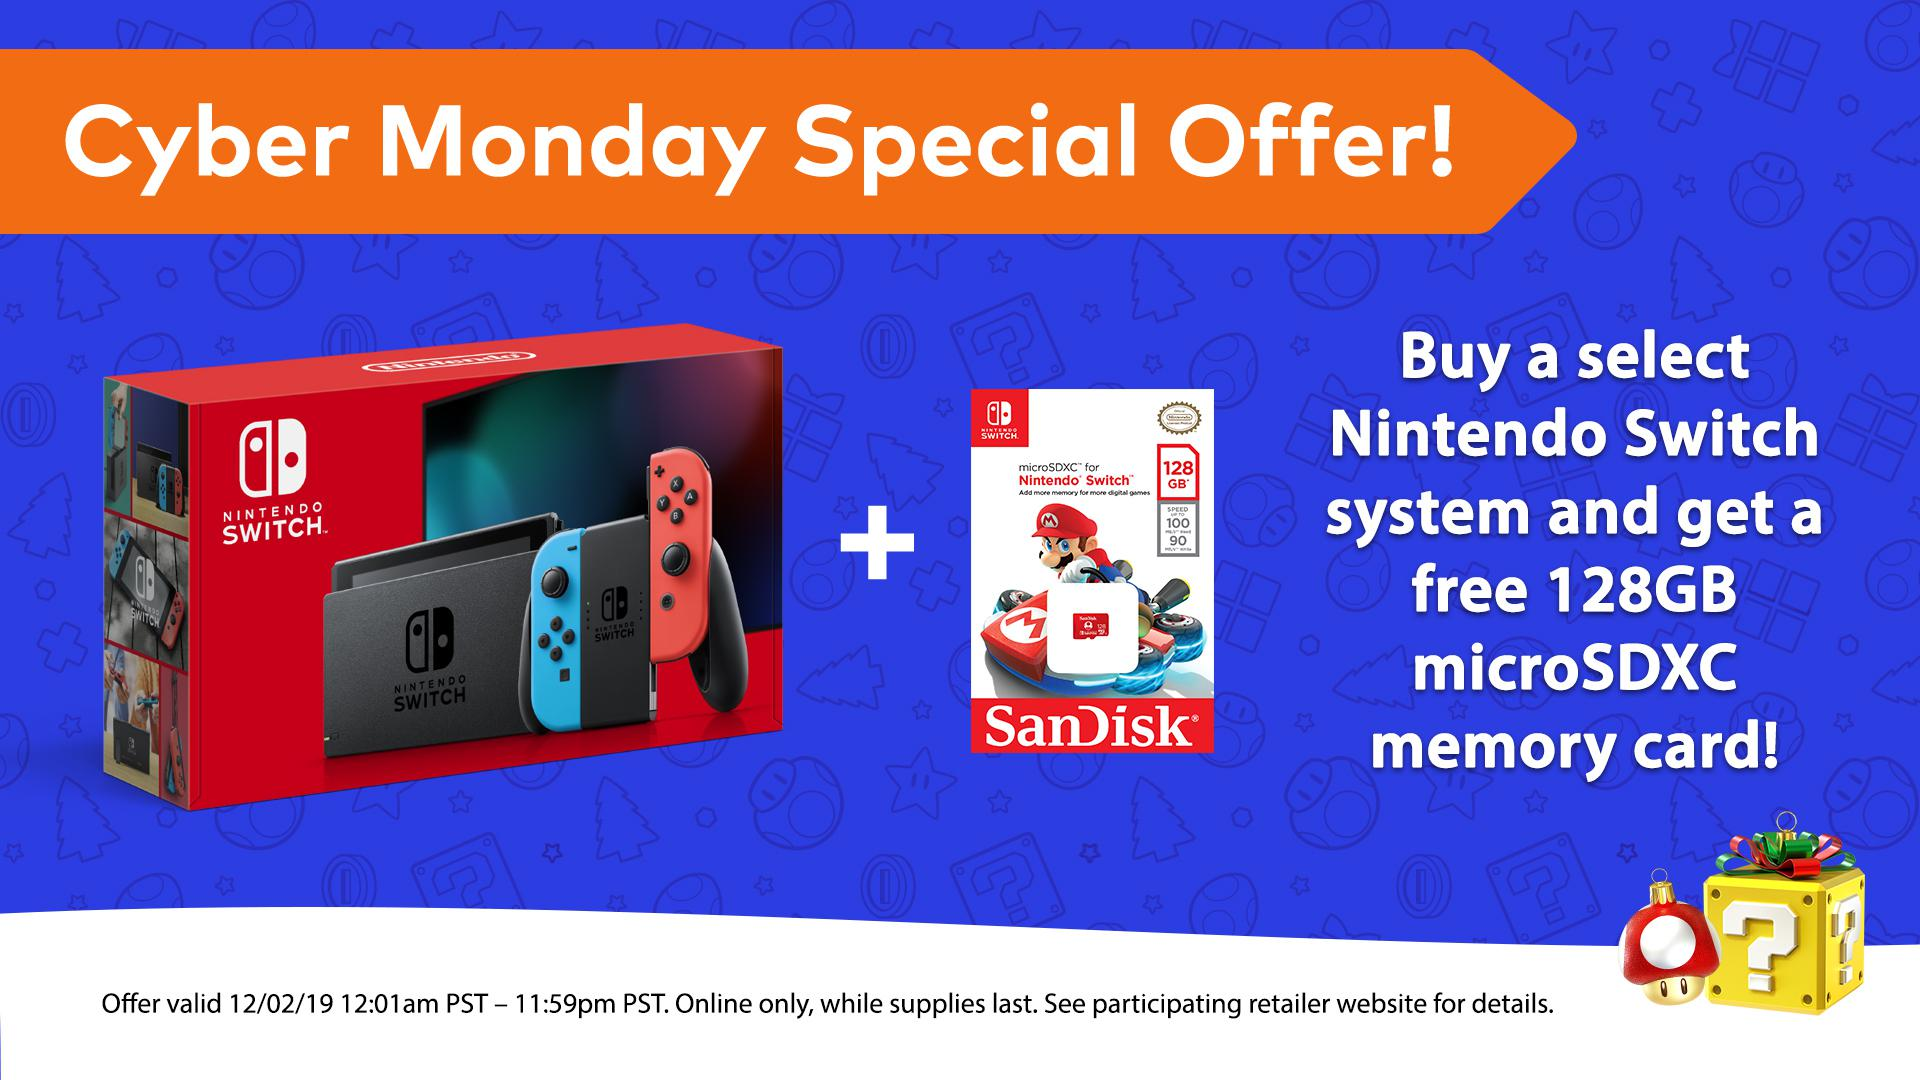 Purchase Nintendo Switch On Cyber Monday And Receive A Free 128gb Microsd Card